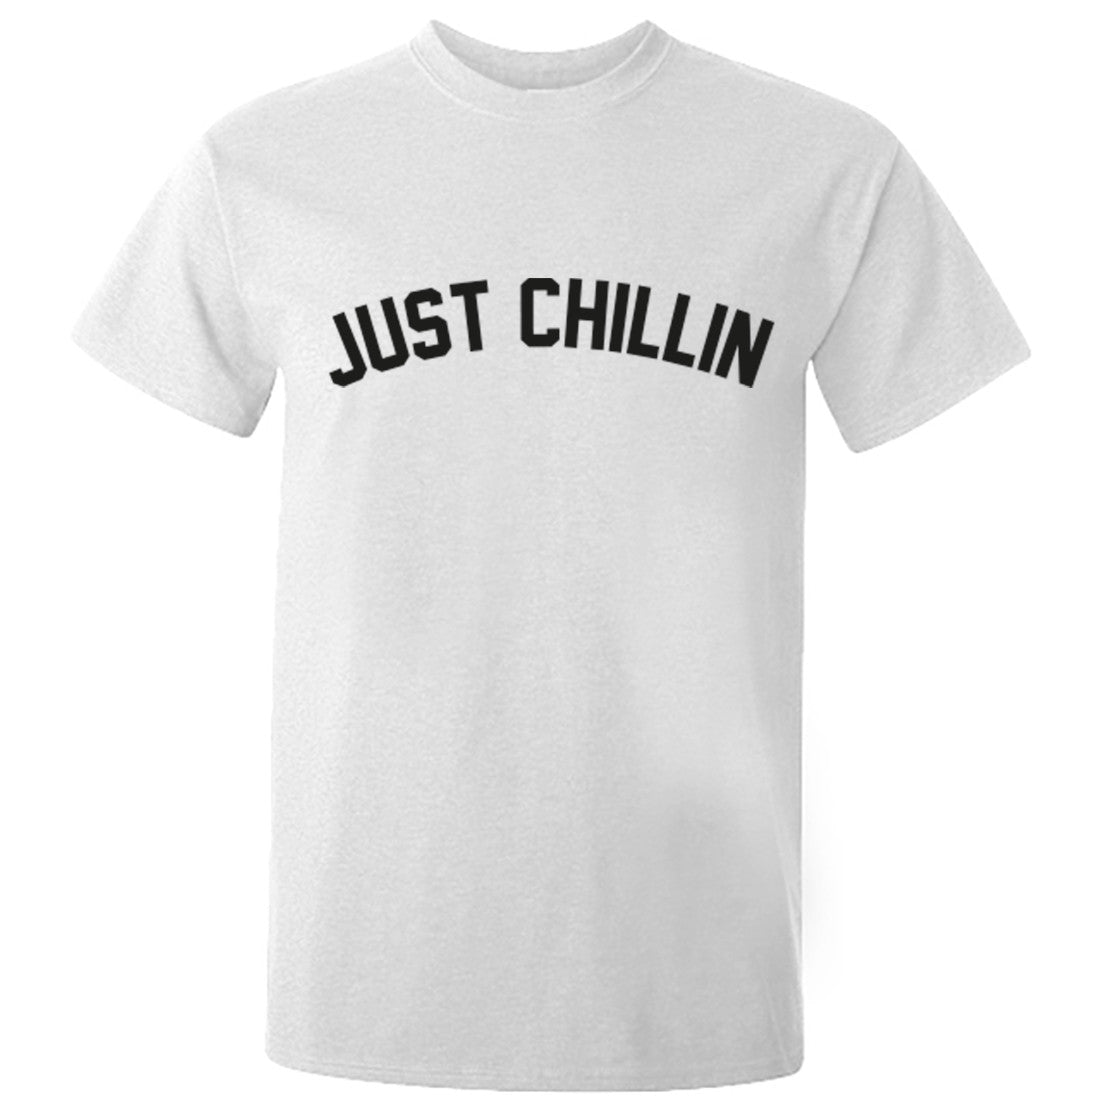 Just Chillin unisex t-shirt K0249